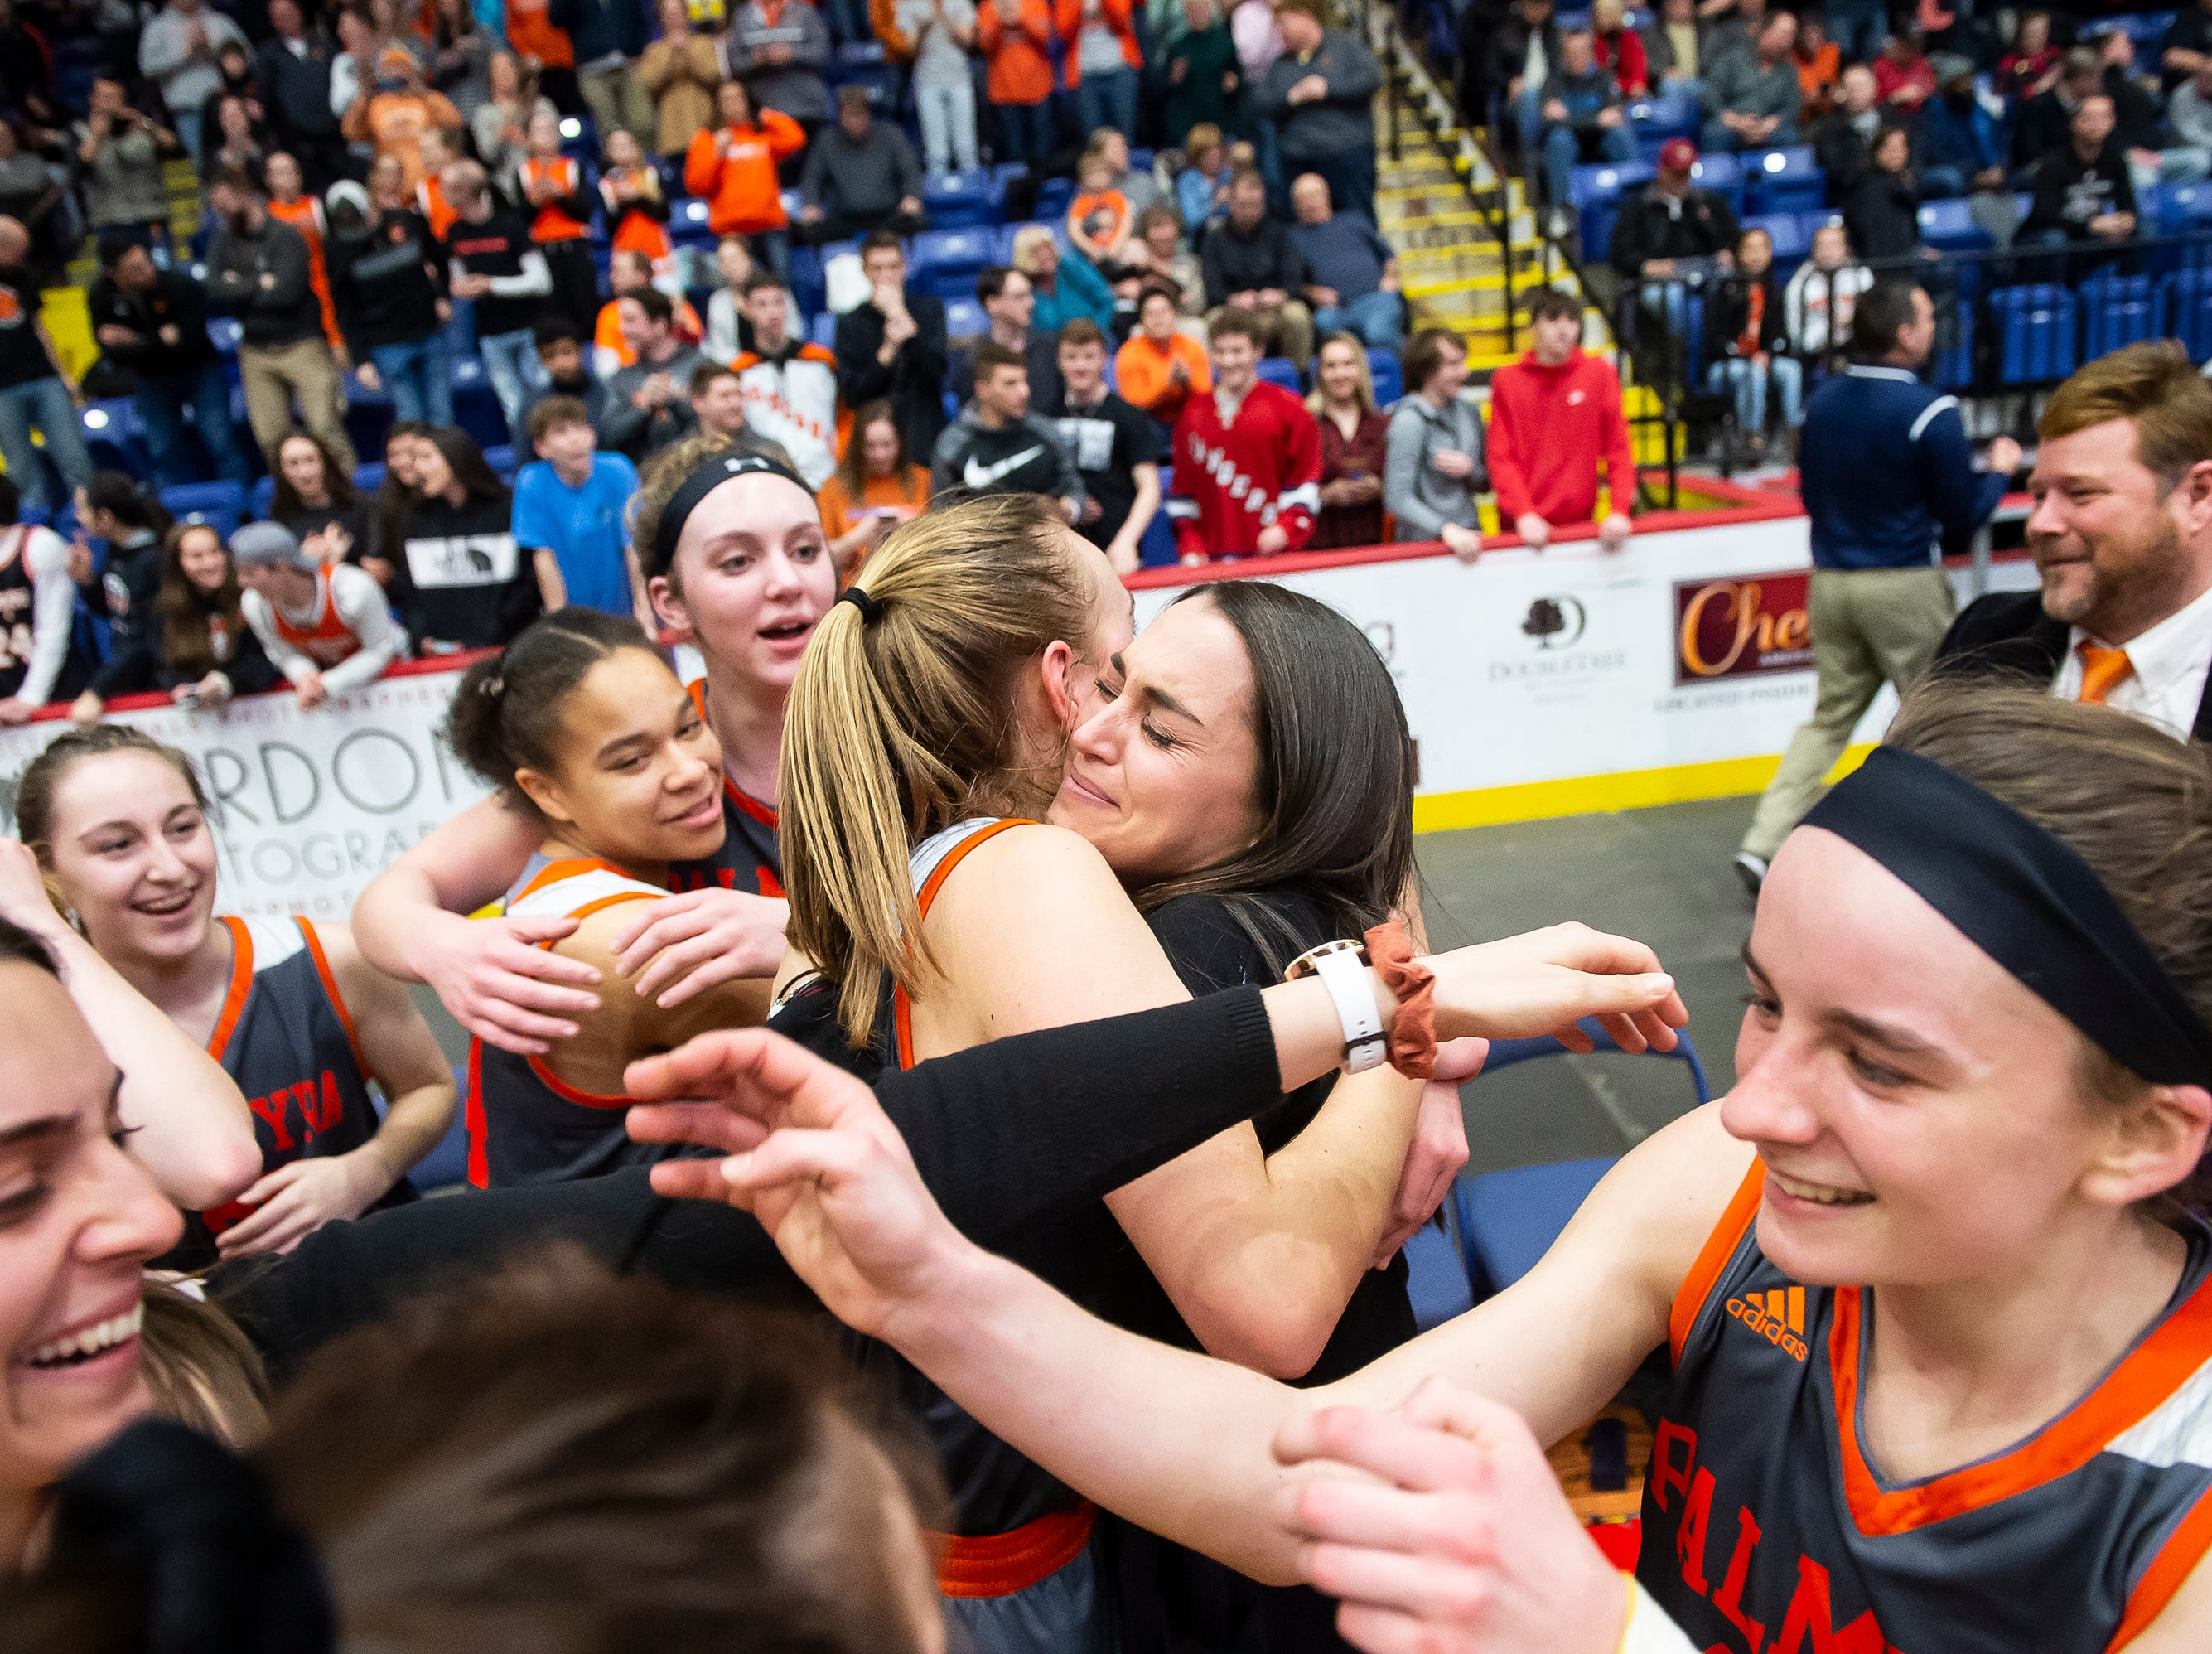 Palmyra players and coaches celebrate after defeating Gettysburg in the District 3 5A girls championship game at Santander Arena in Reading, Pa., Friday, March 1, 2019. The Cougars won 31-23.